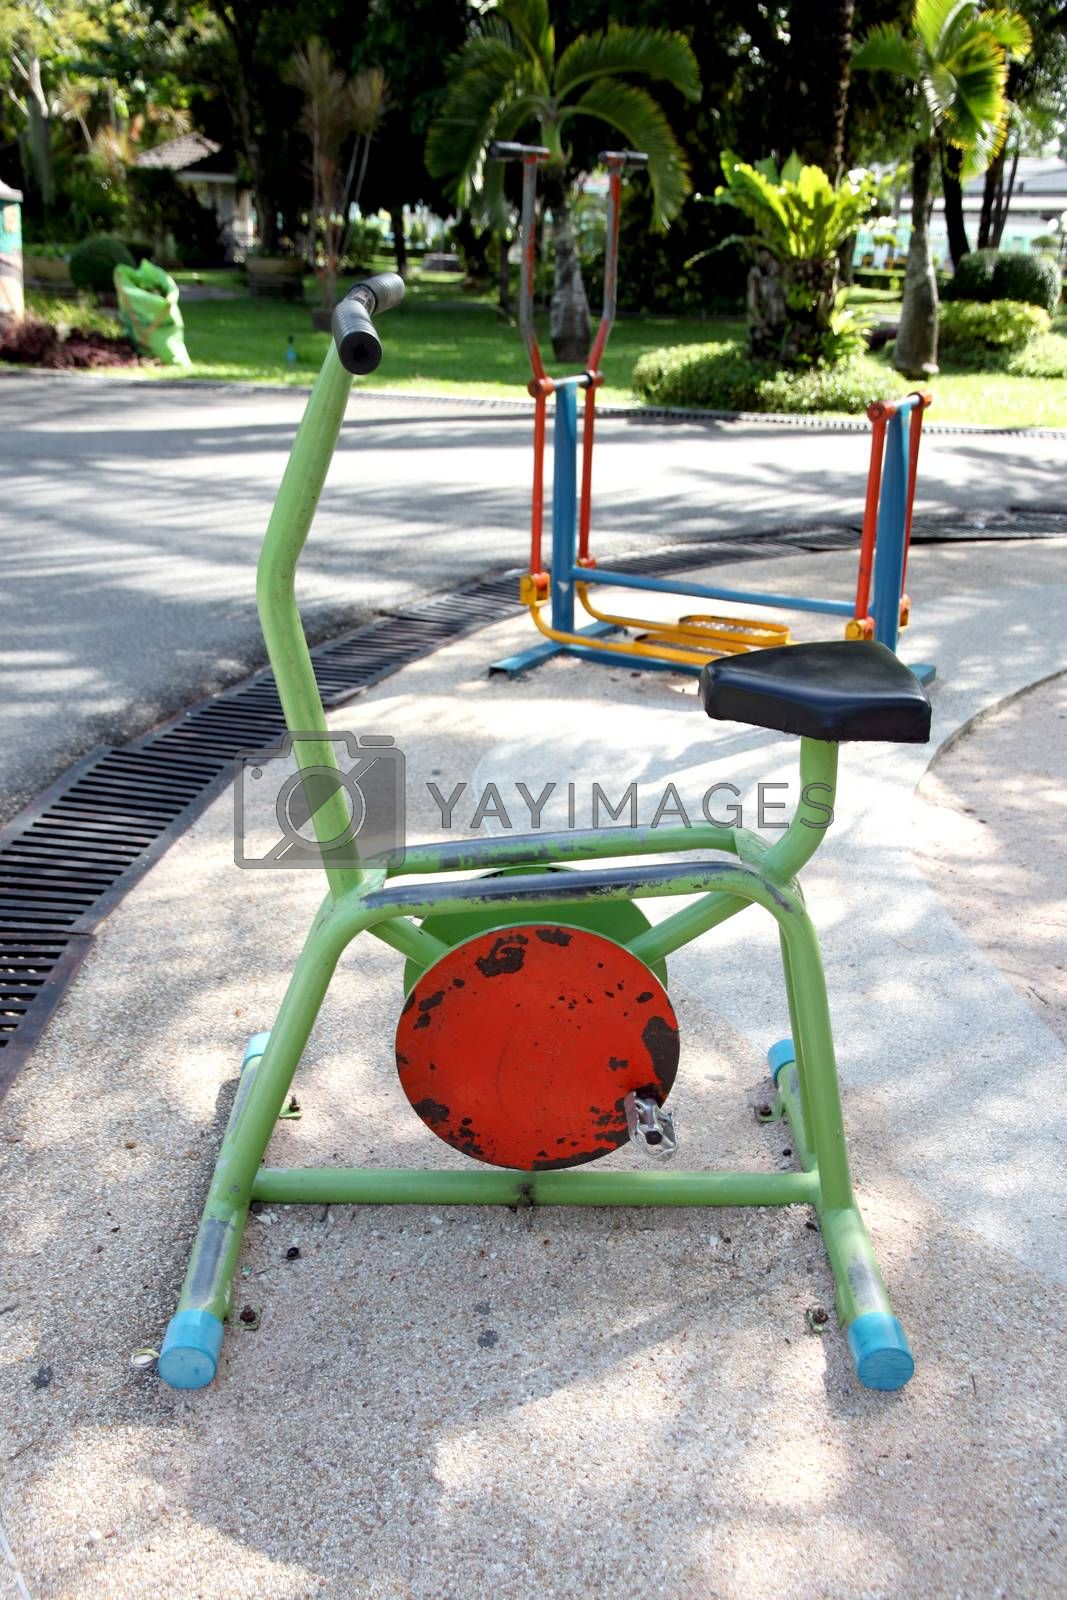 Exercise equipment in the park. by PiyaPhoto